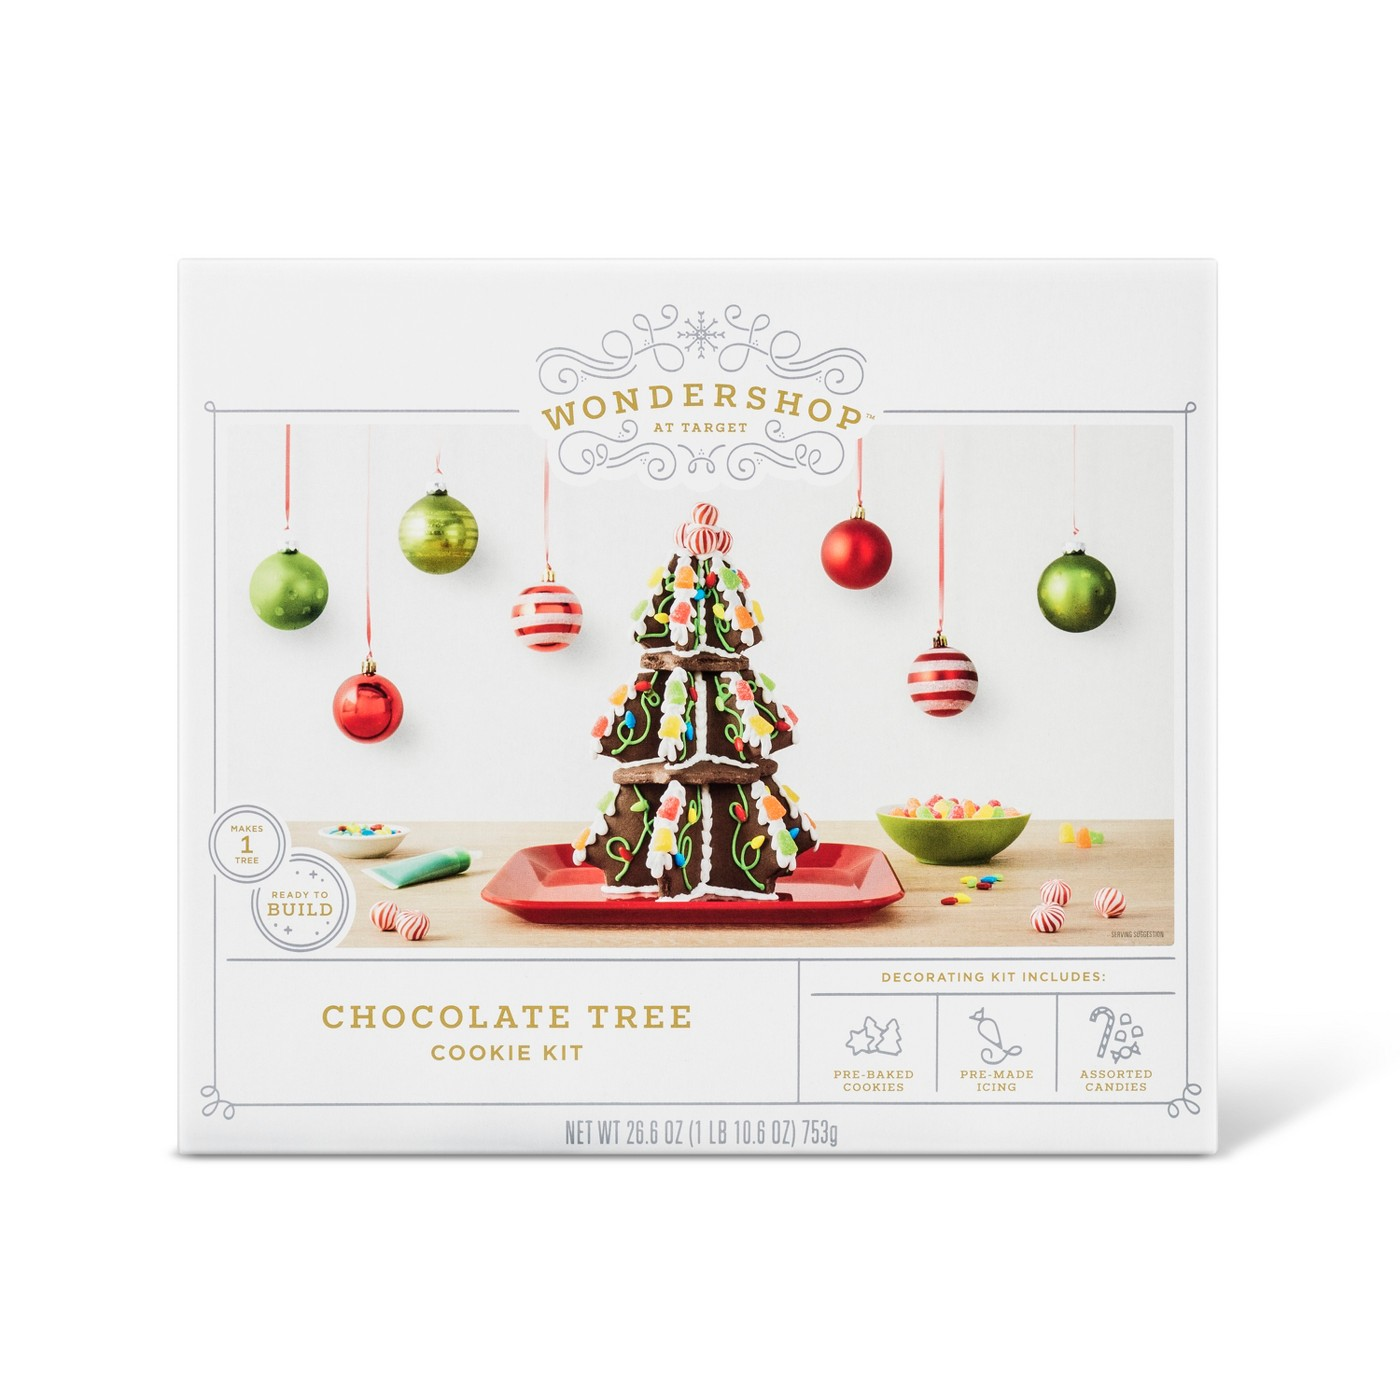 Box for chocolate Christmas tree cookie decorating kit